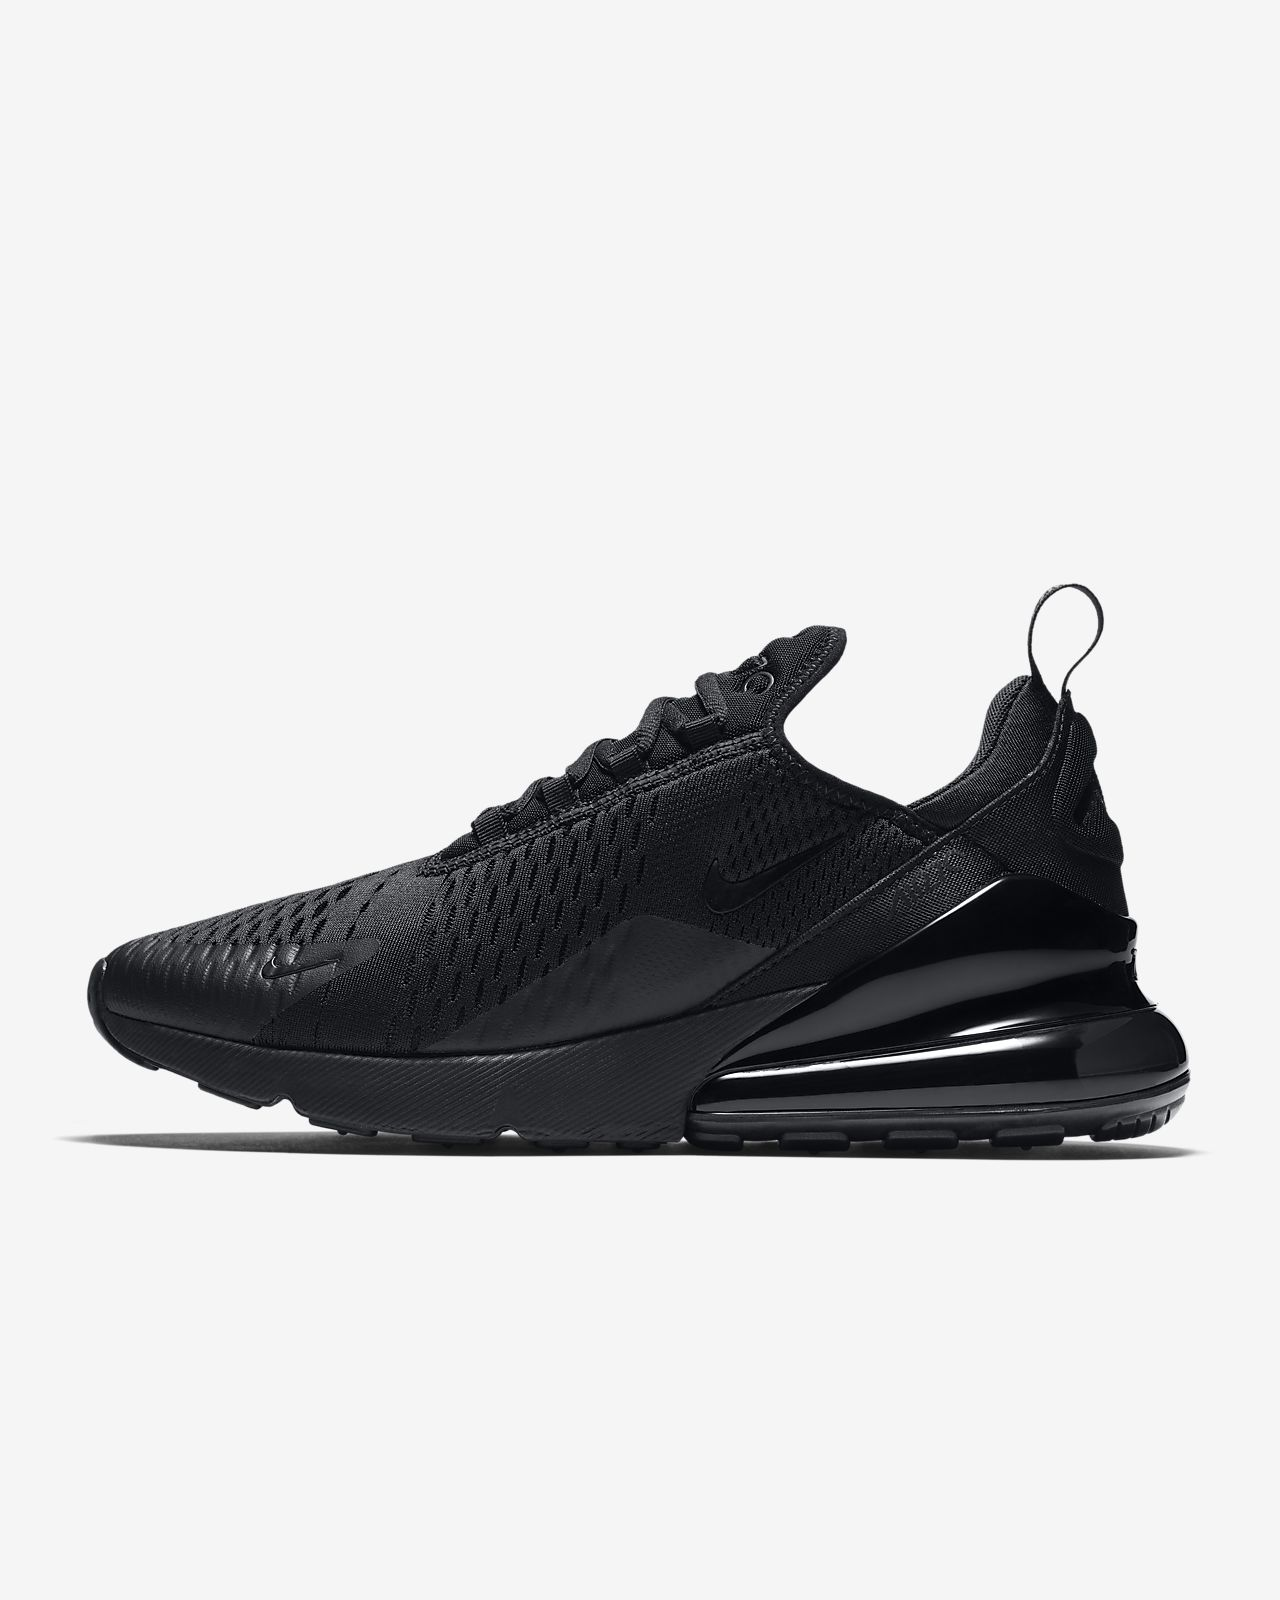 888419b71f5e Nike Air Max 270 Men s Shoe. Nike.com AU